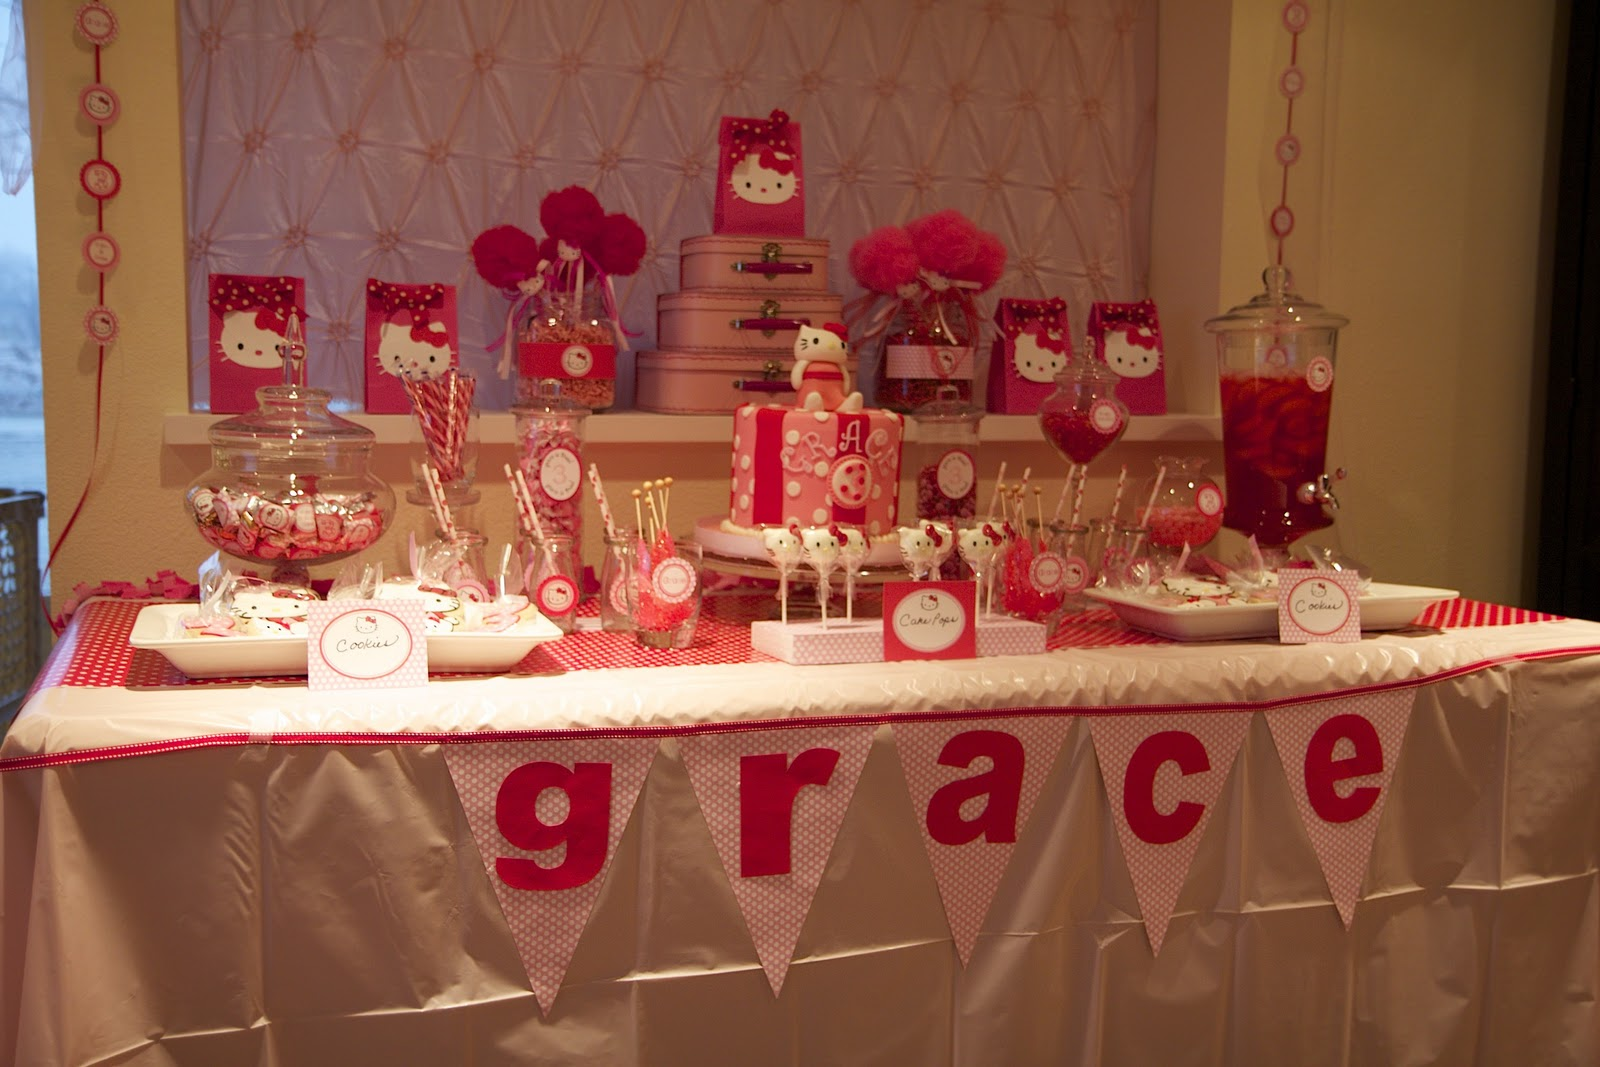 Home Sweet Home Place Graces Hello Kitty Birthday Party